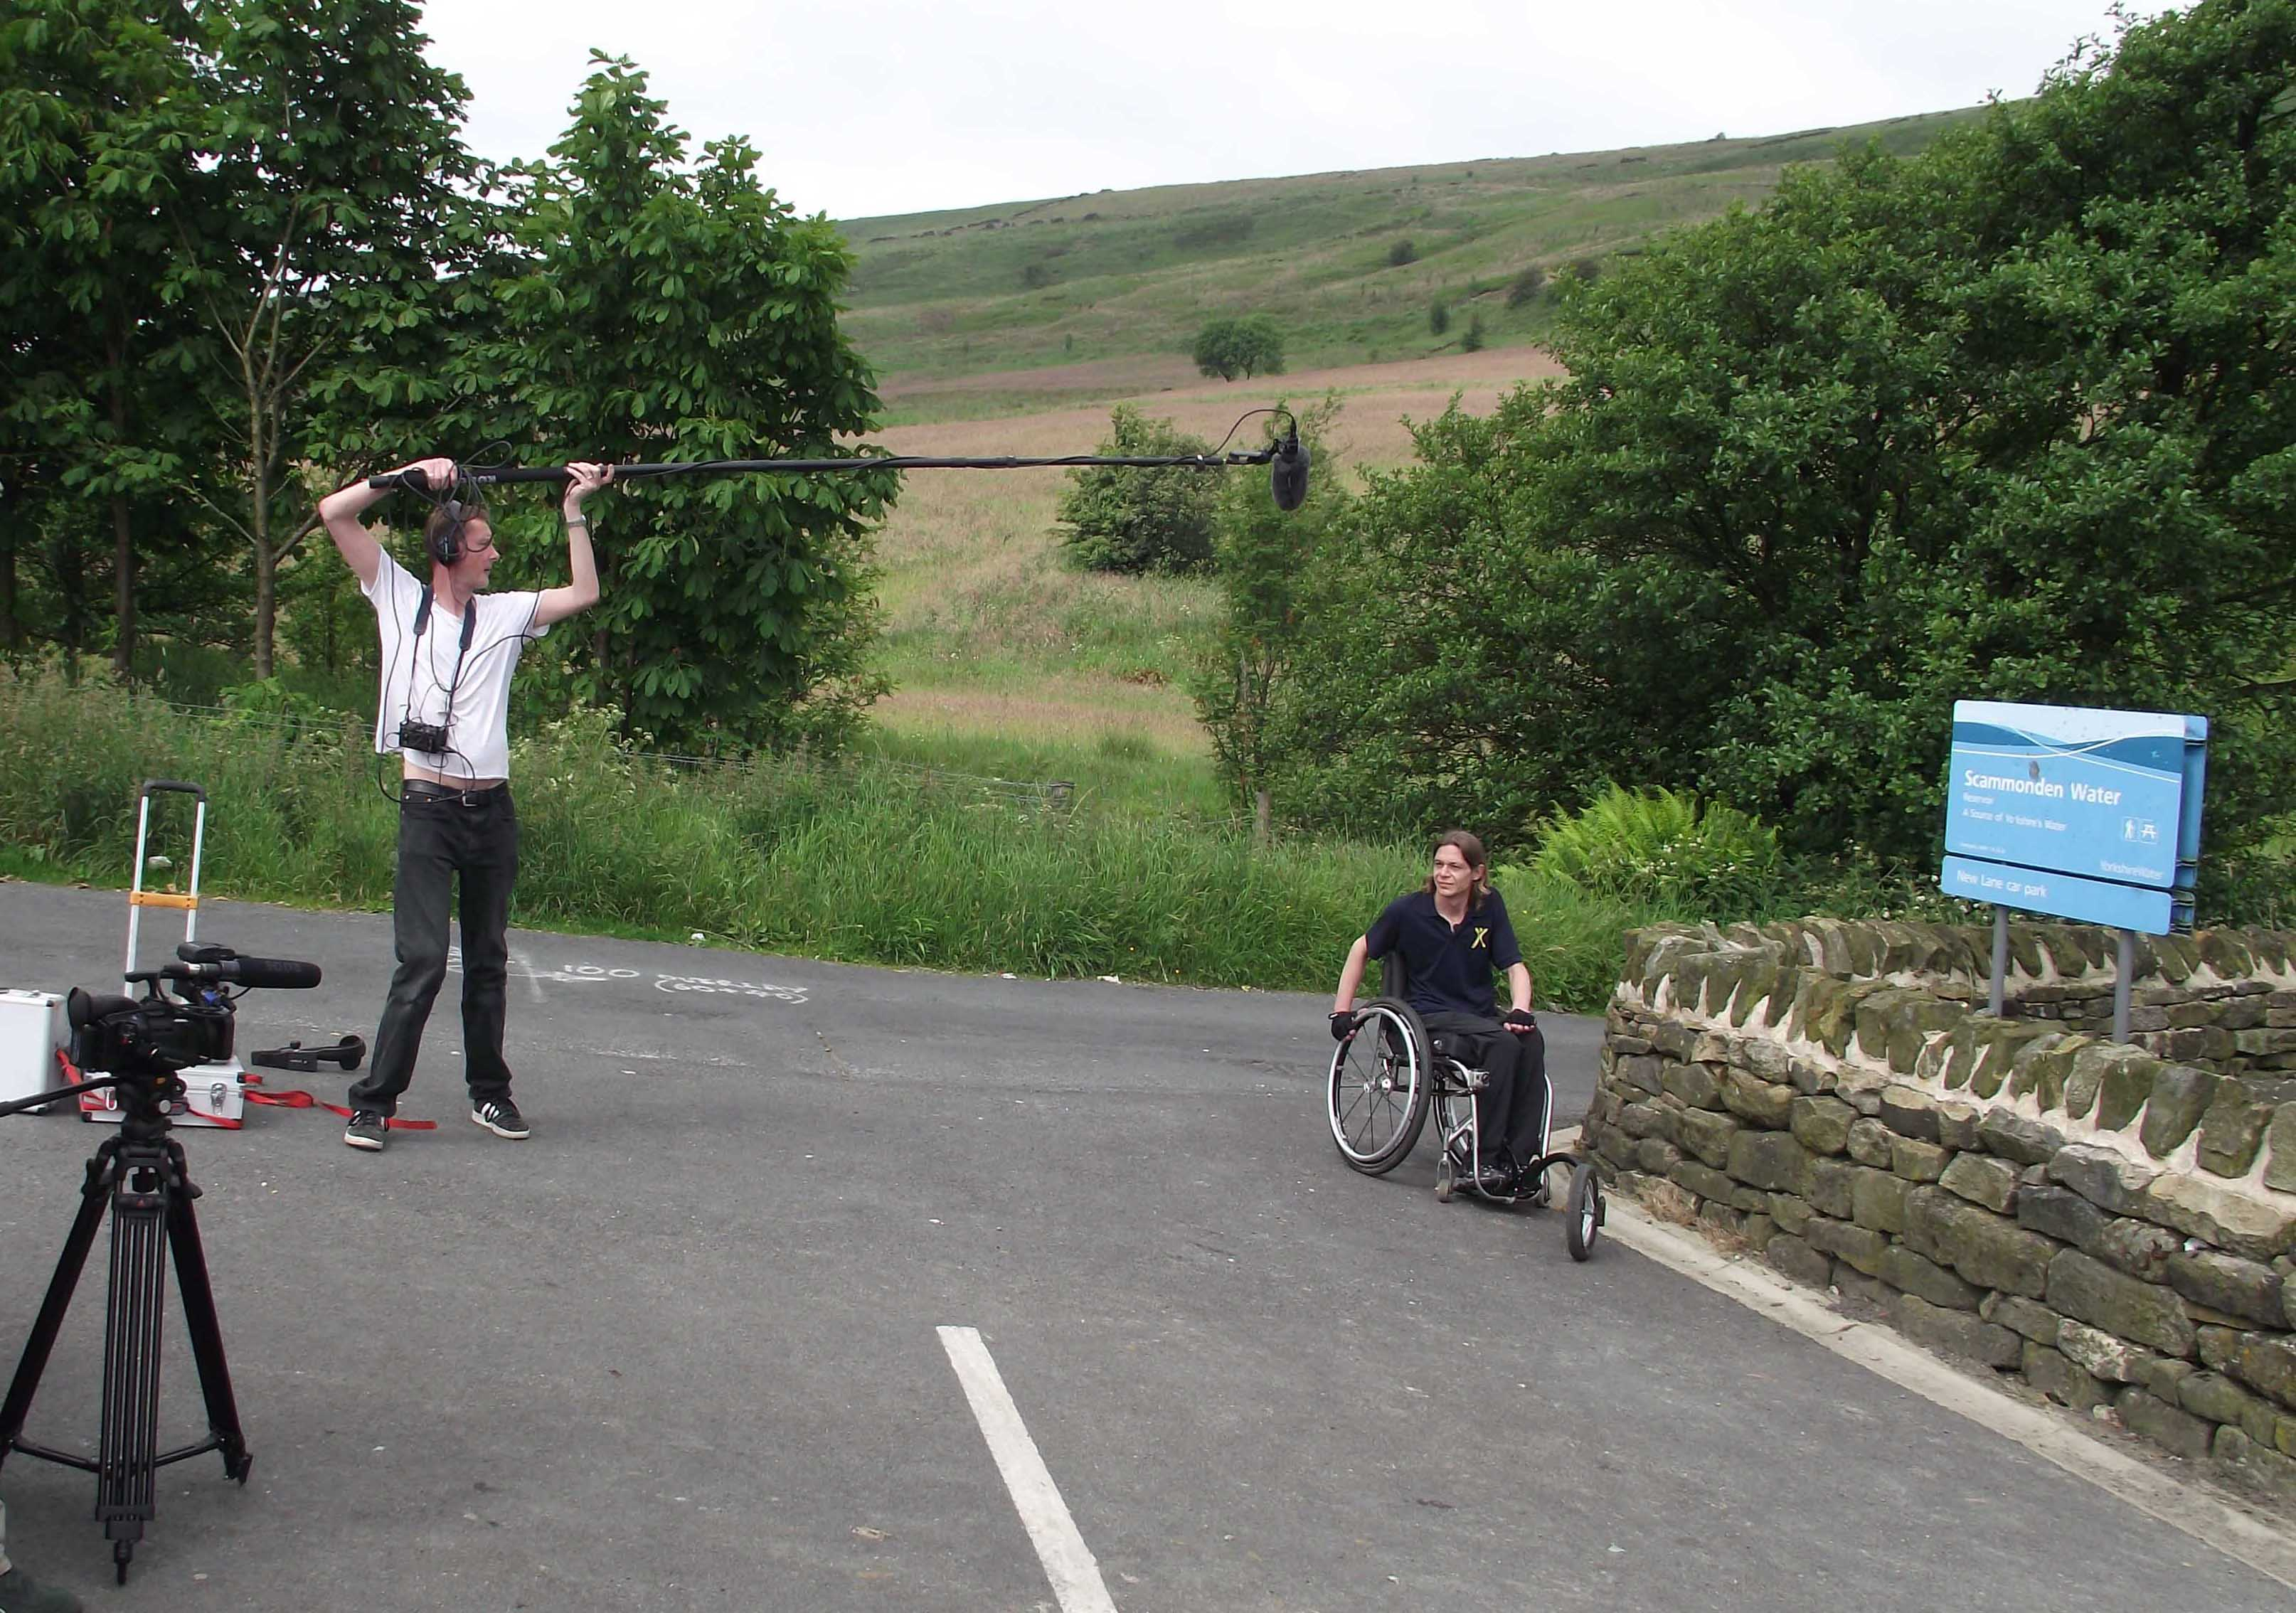 Craig Grimes and a volunteer filming at Scammonden Water, Huddersfield